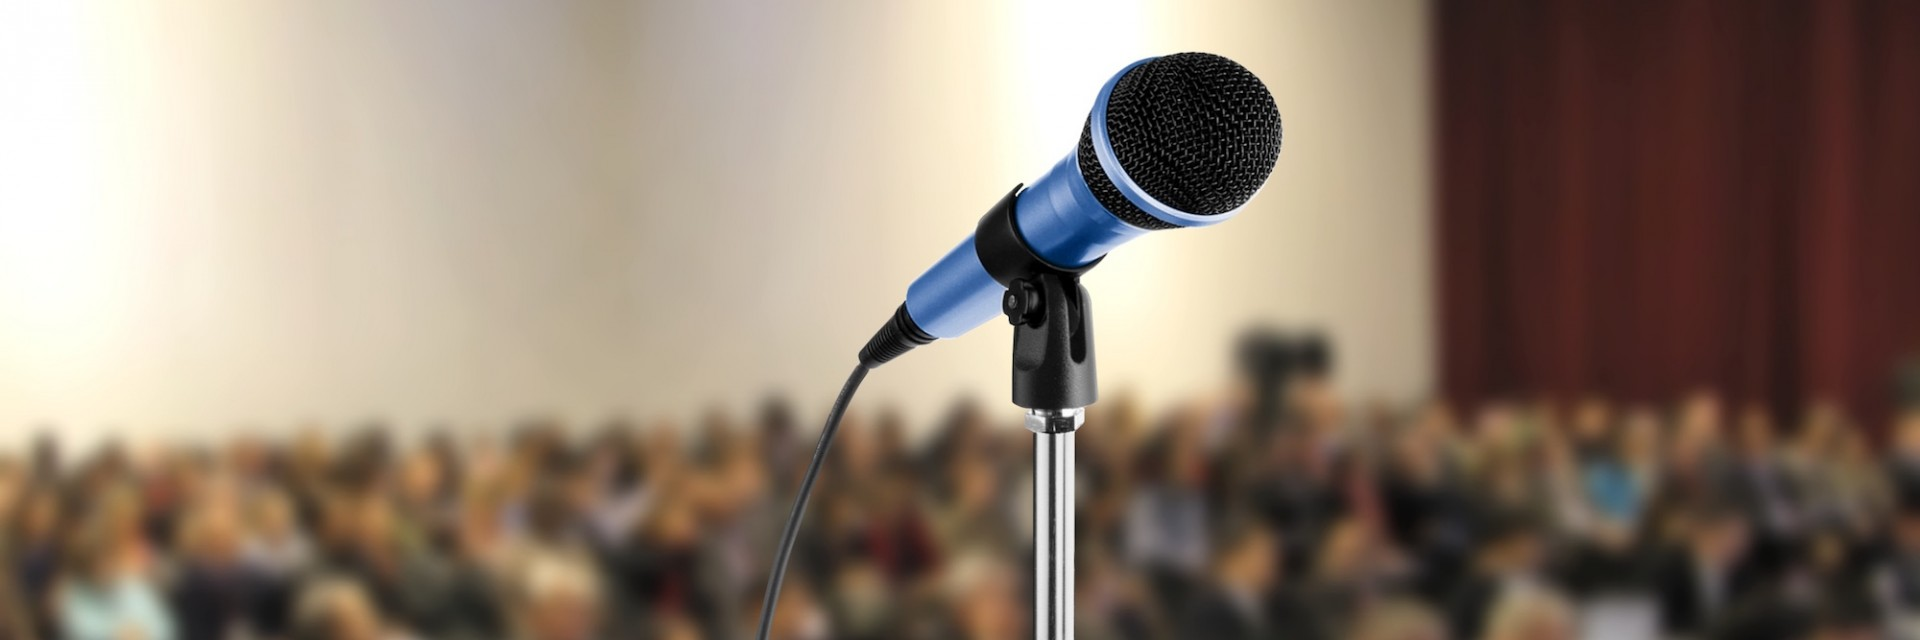 Microphone placed at a developer conference in front of a packed auditorium of attendees prior to a keynote speech